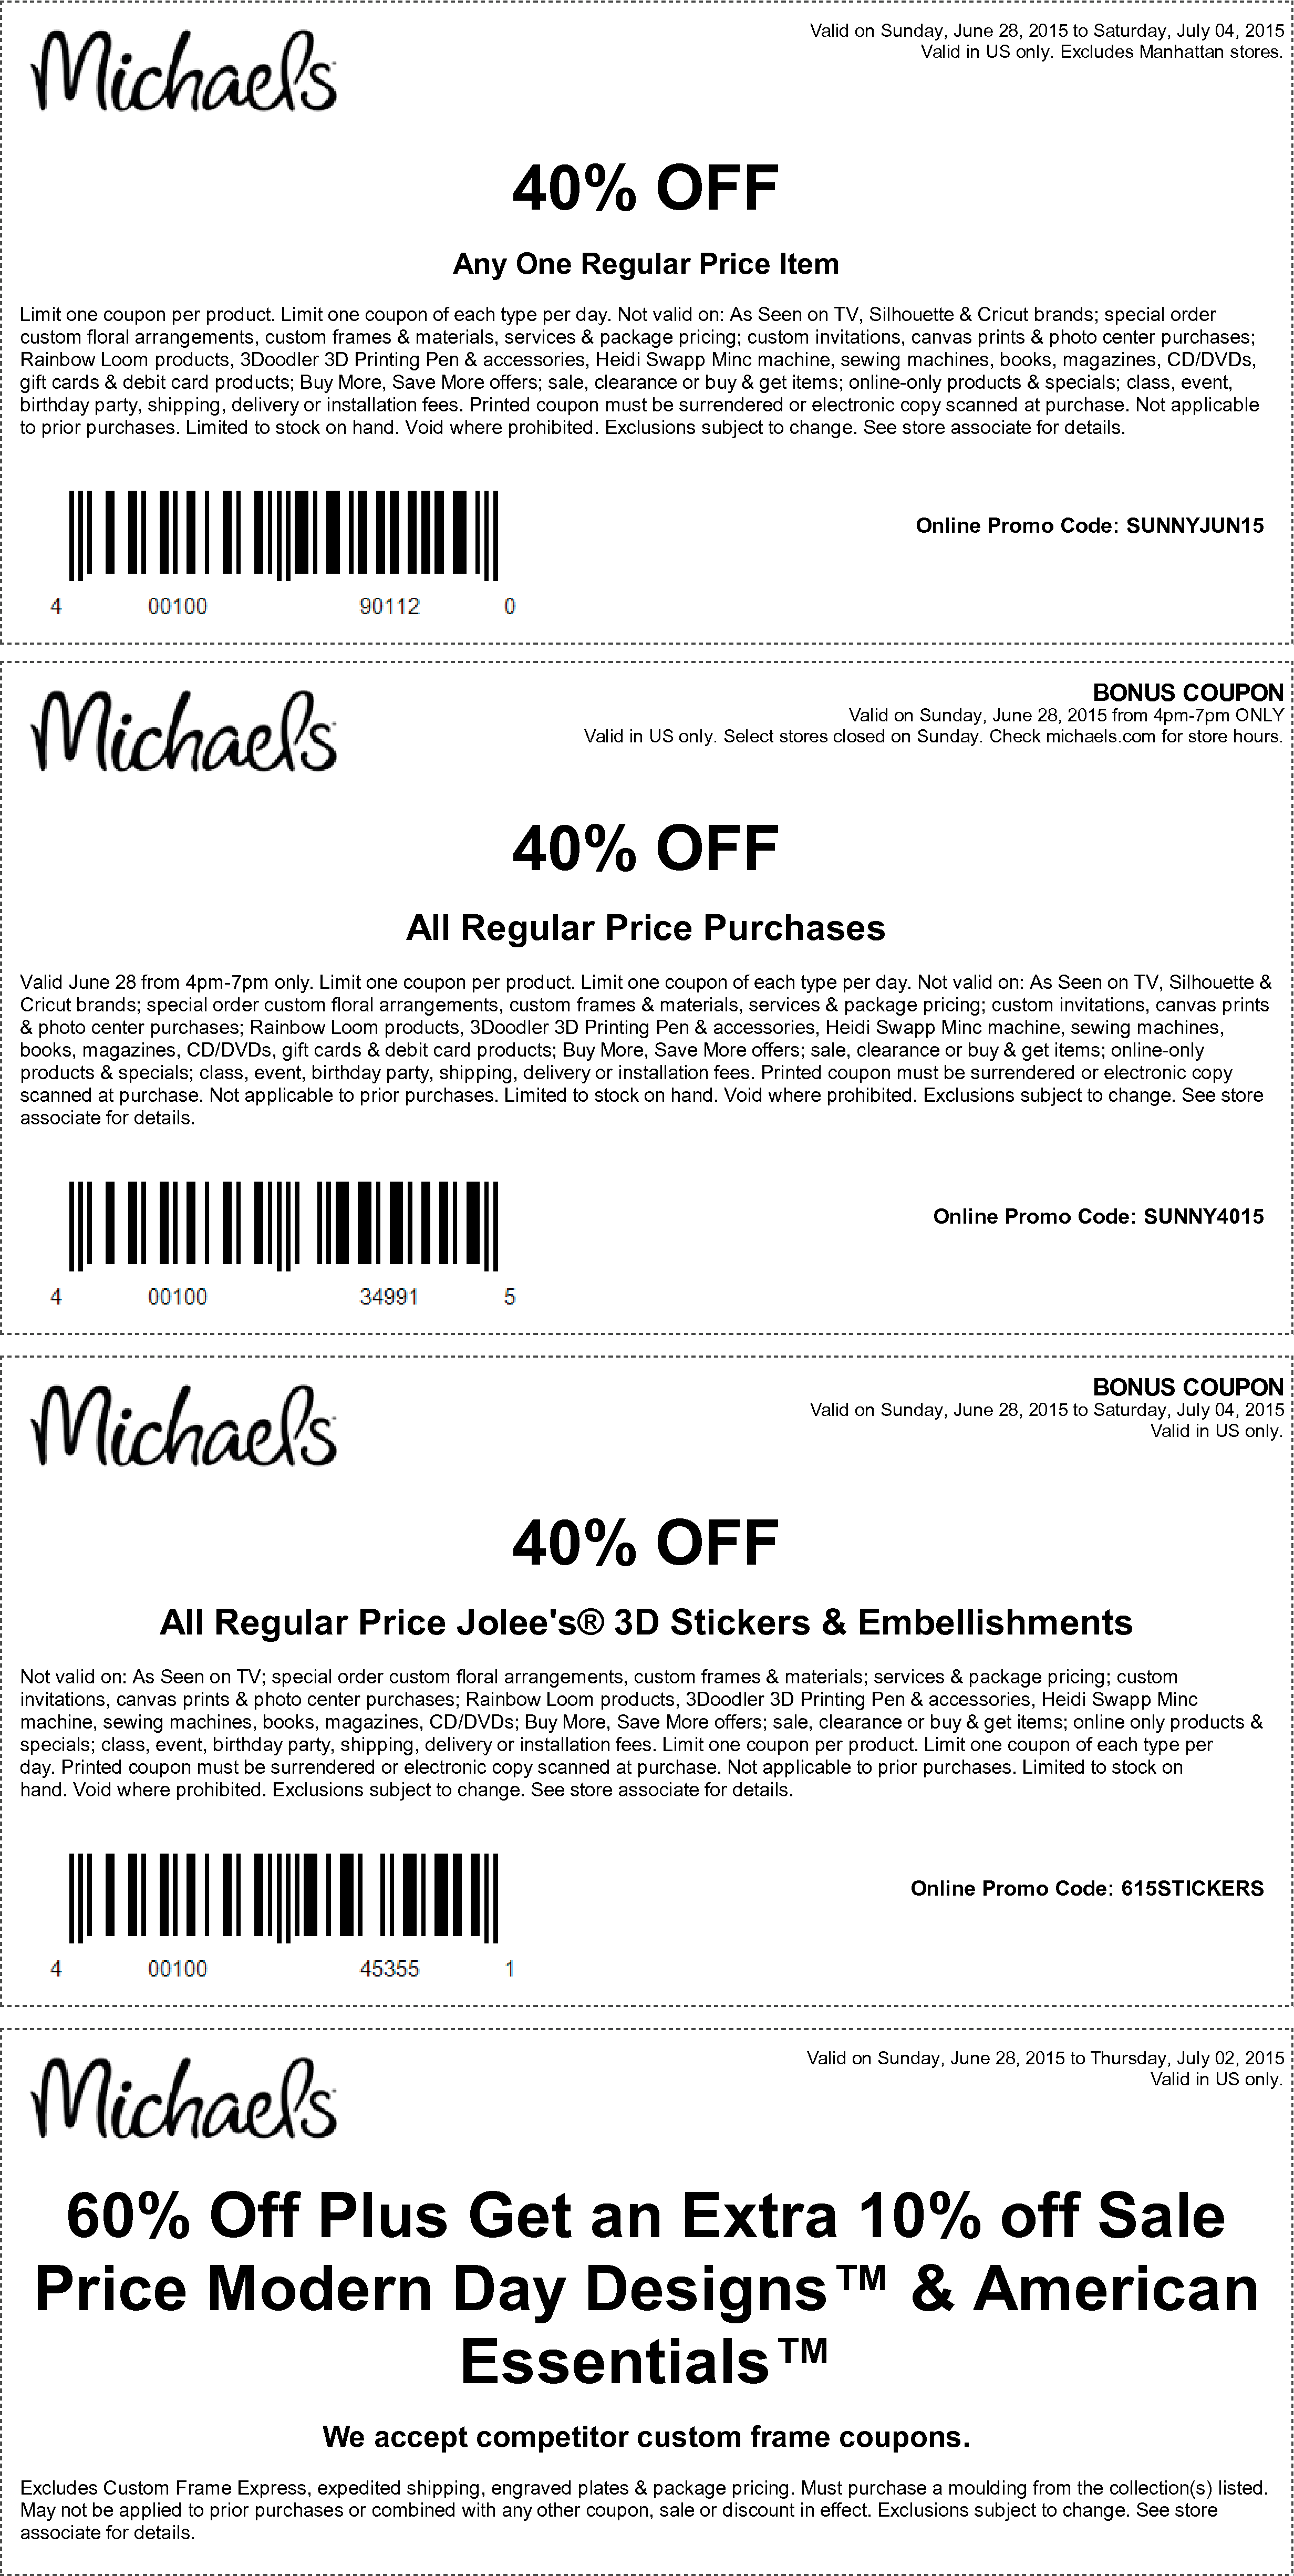 Michaels Coupon April 2018 40% off the tab, a single item & more at Michaels, or online via promo code SUNNYJUN15